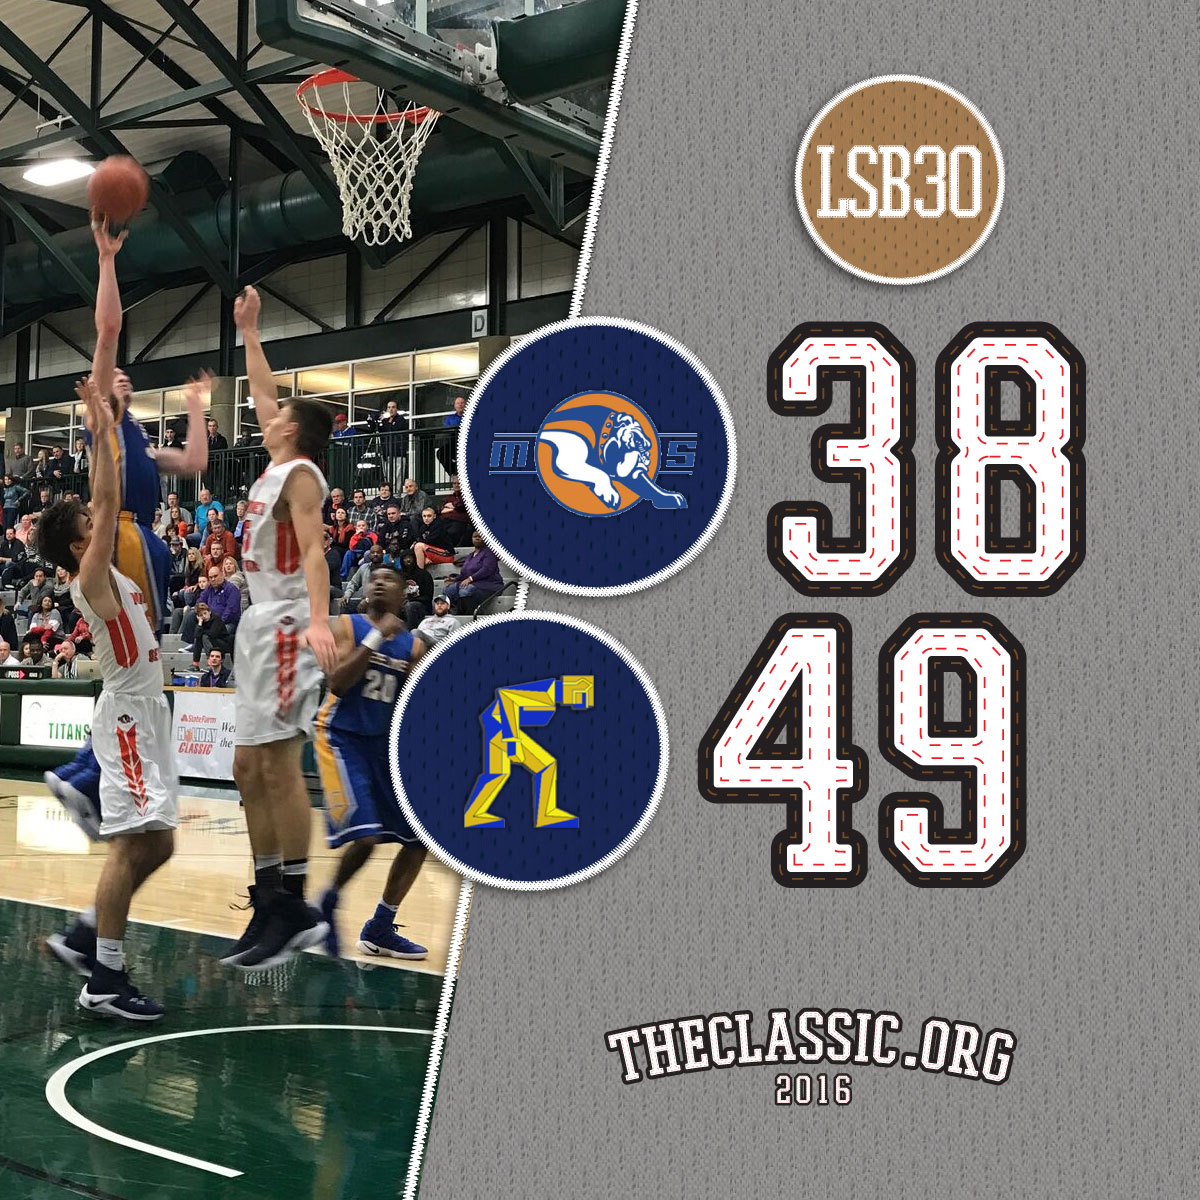 LSB: Joliet Central 49 / Mahomet-Seymour 38 + The State Farm